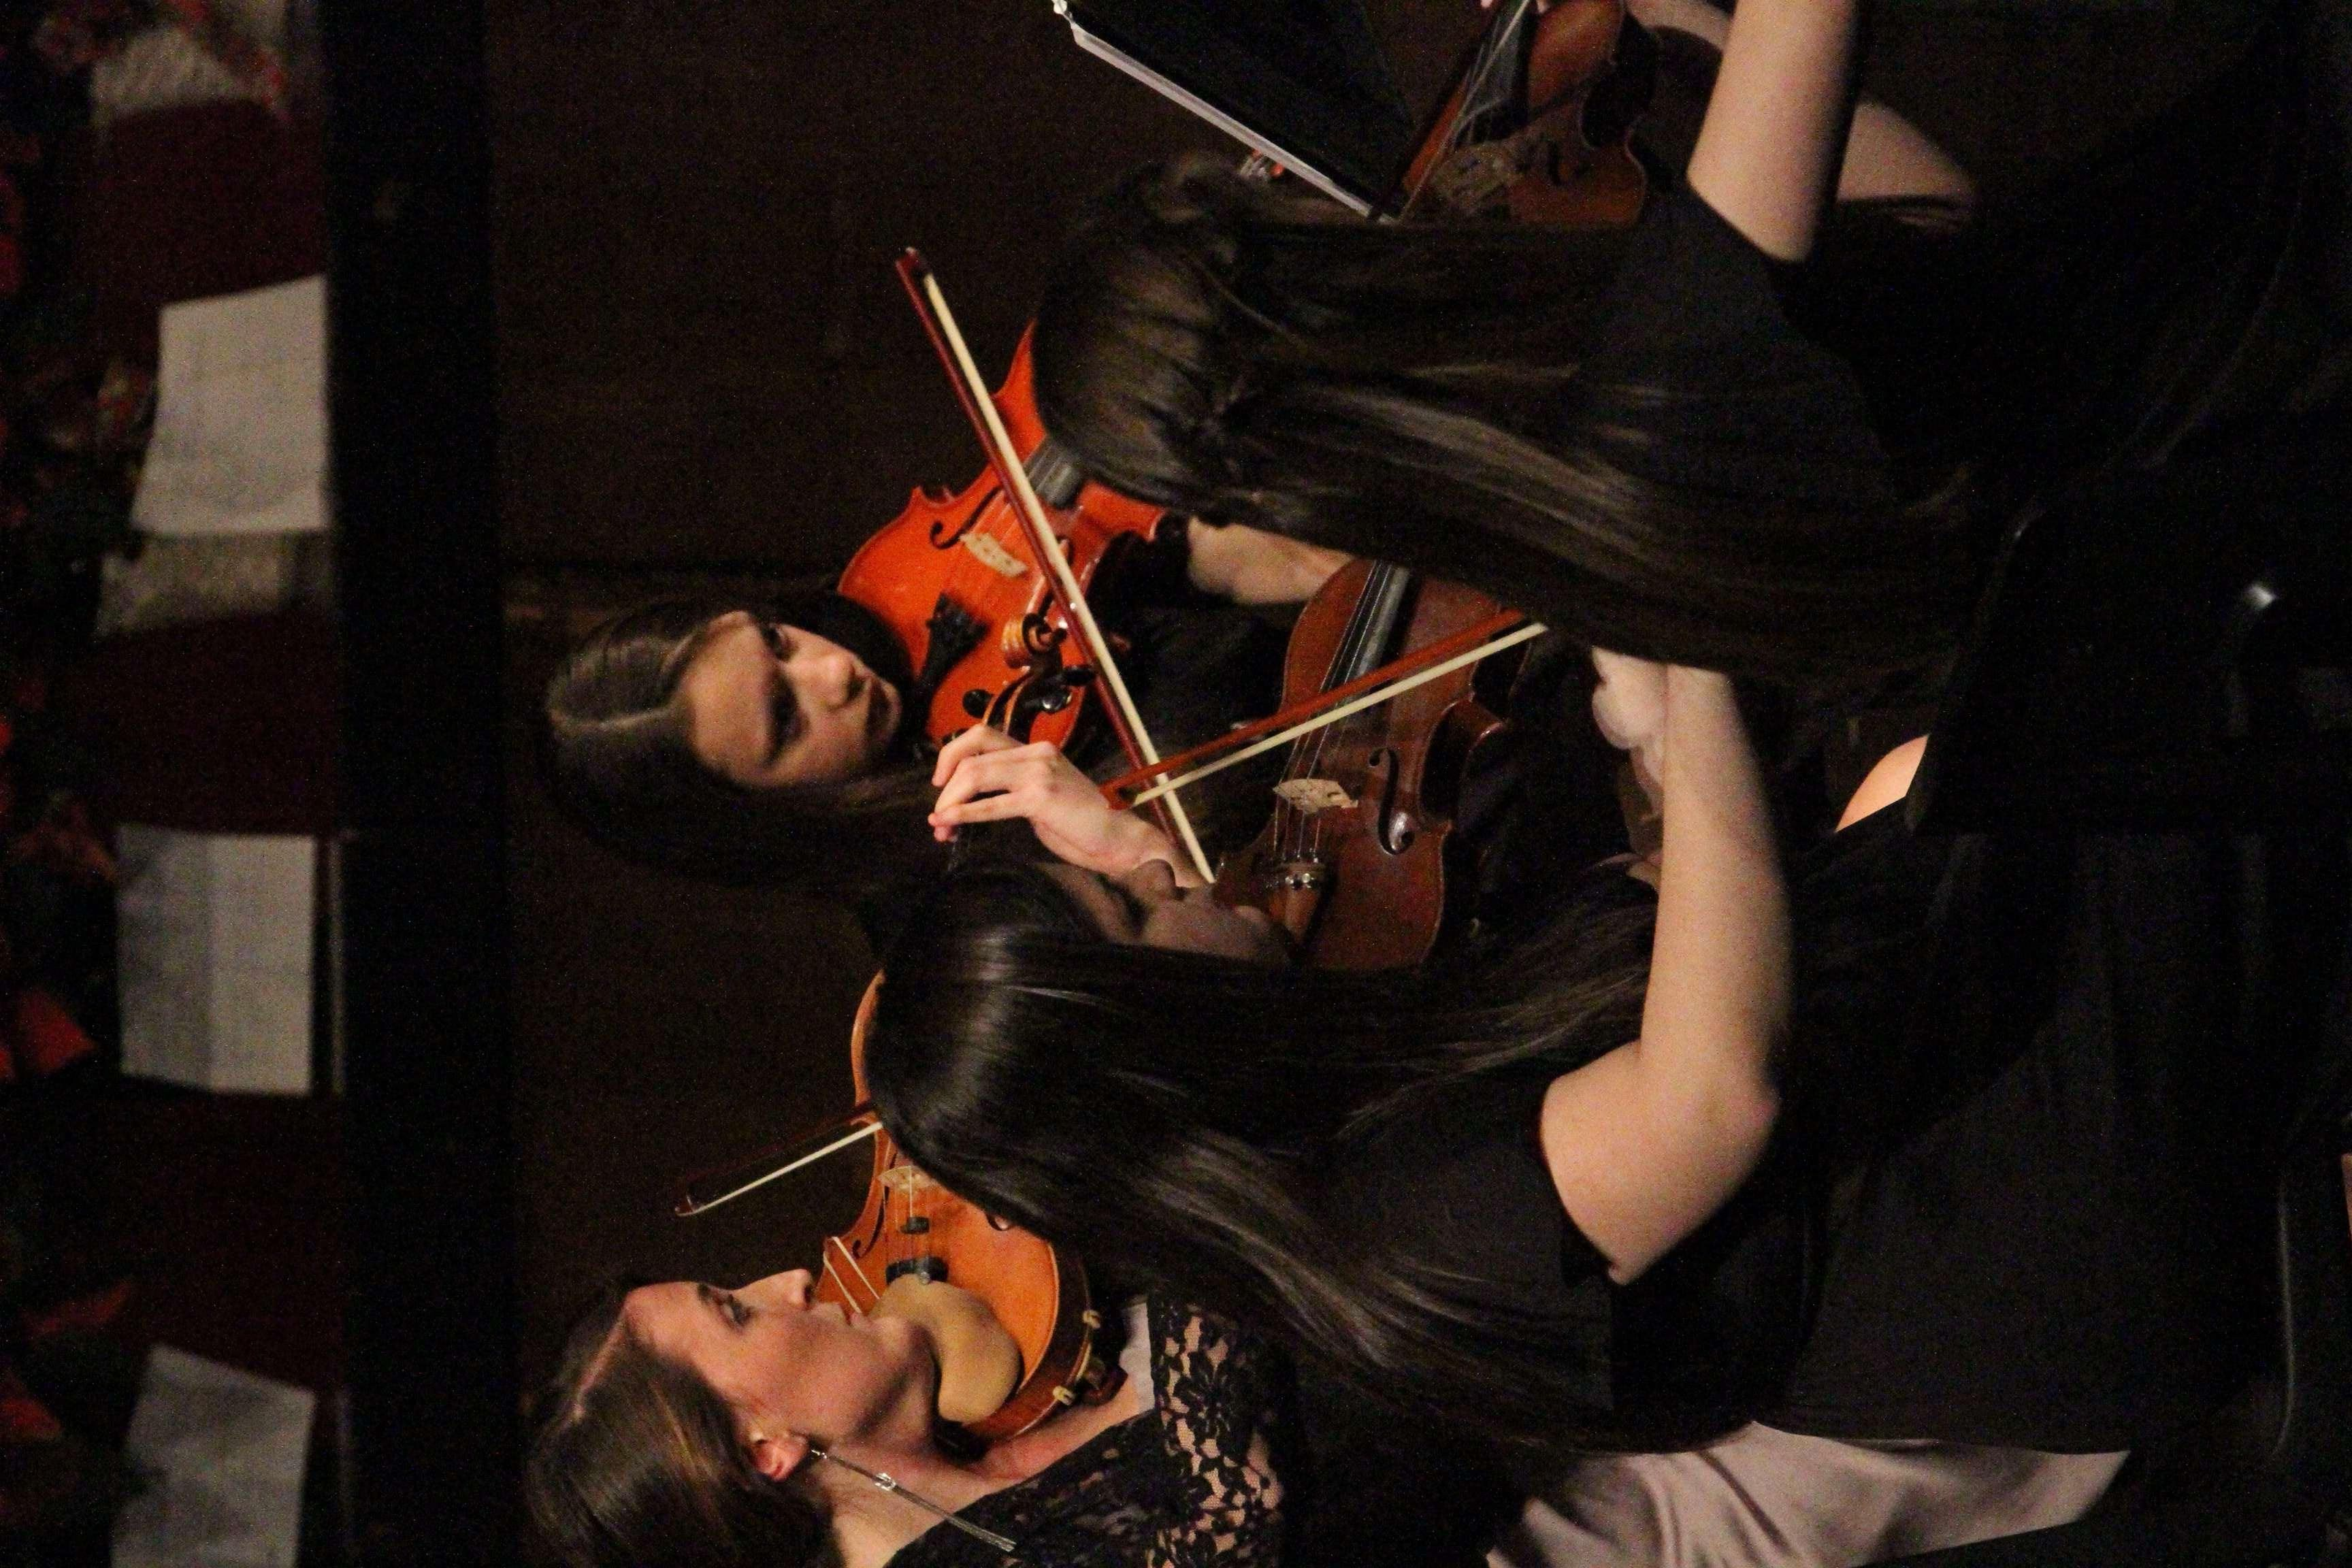 The String Ensemble plays during the Instrumental Concert on December 4.